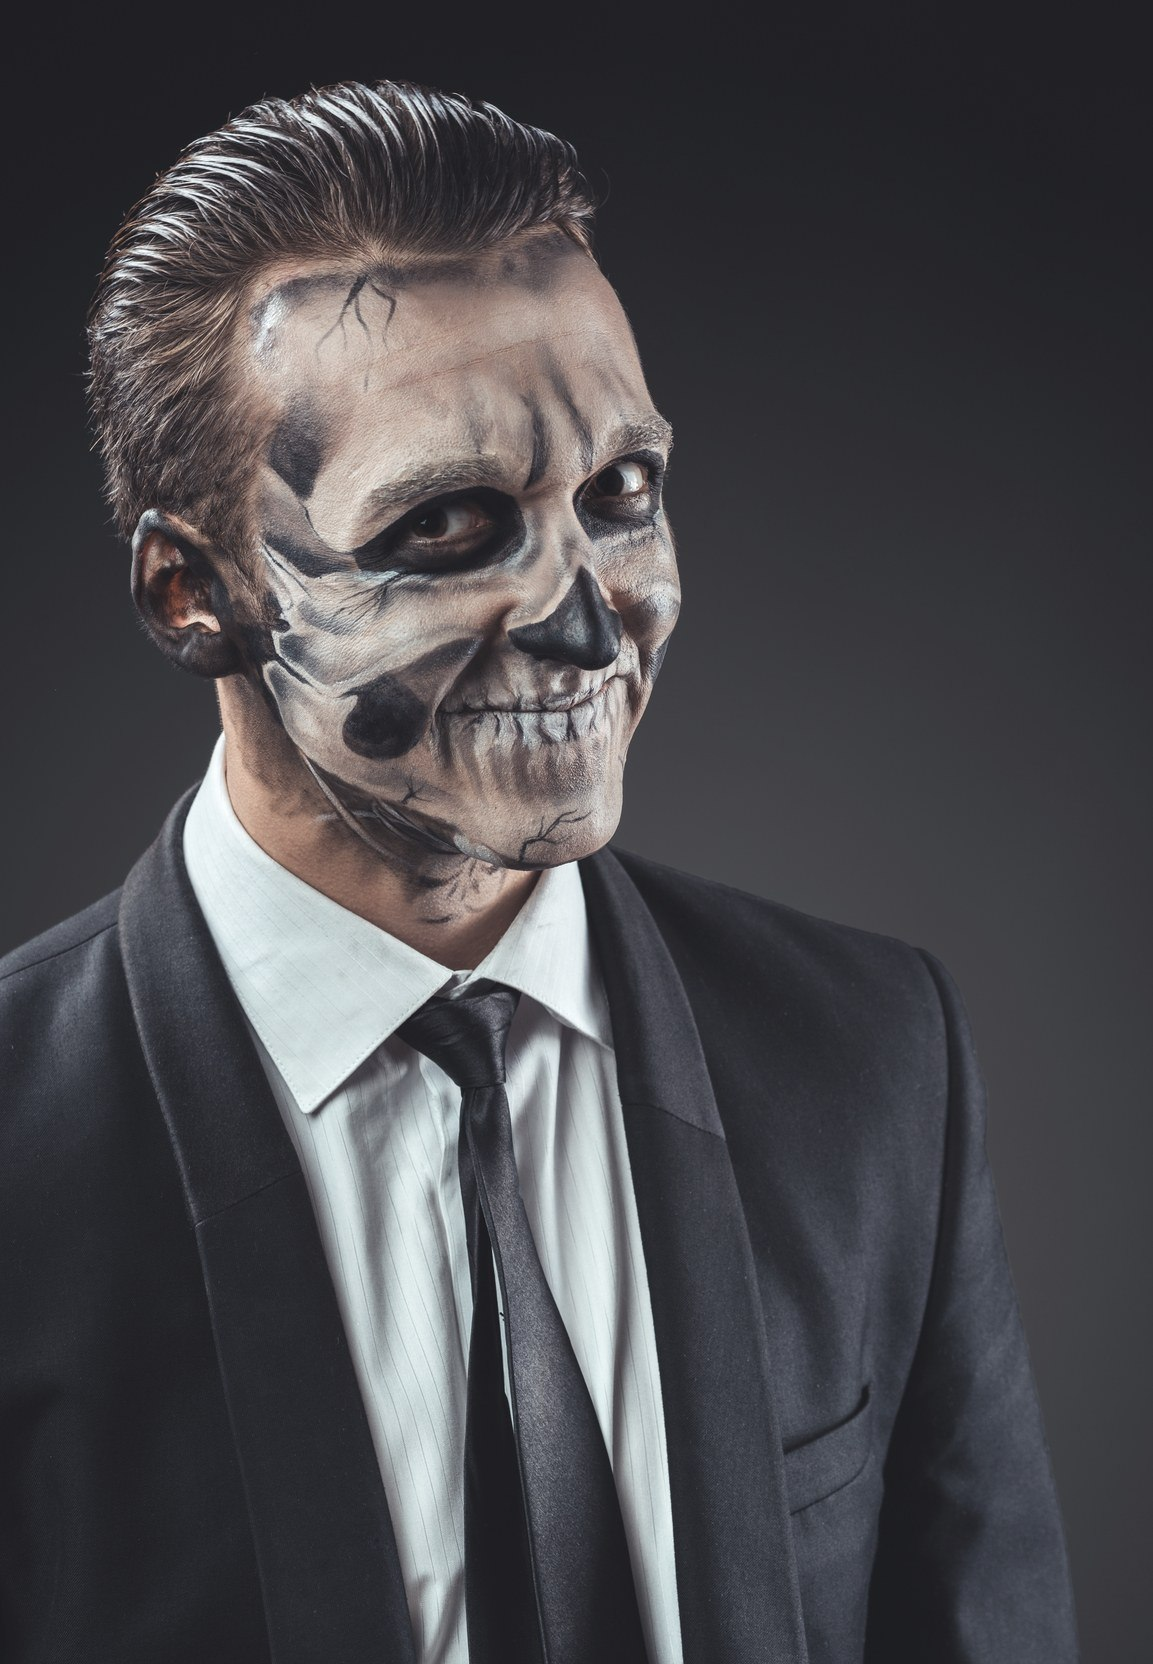 man wearing zombie costume with slicked back hairstyle